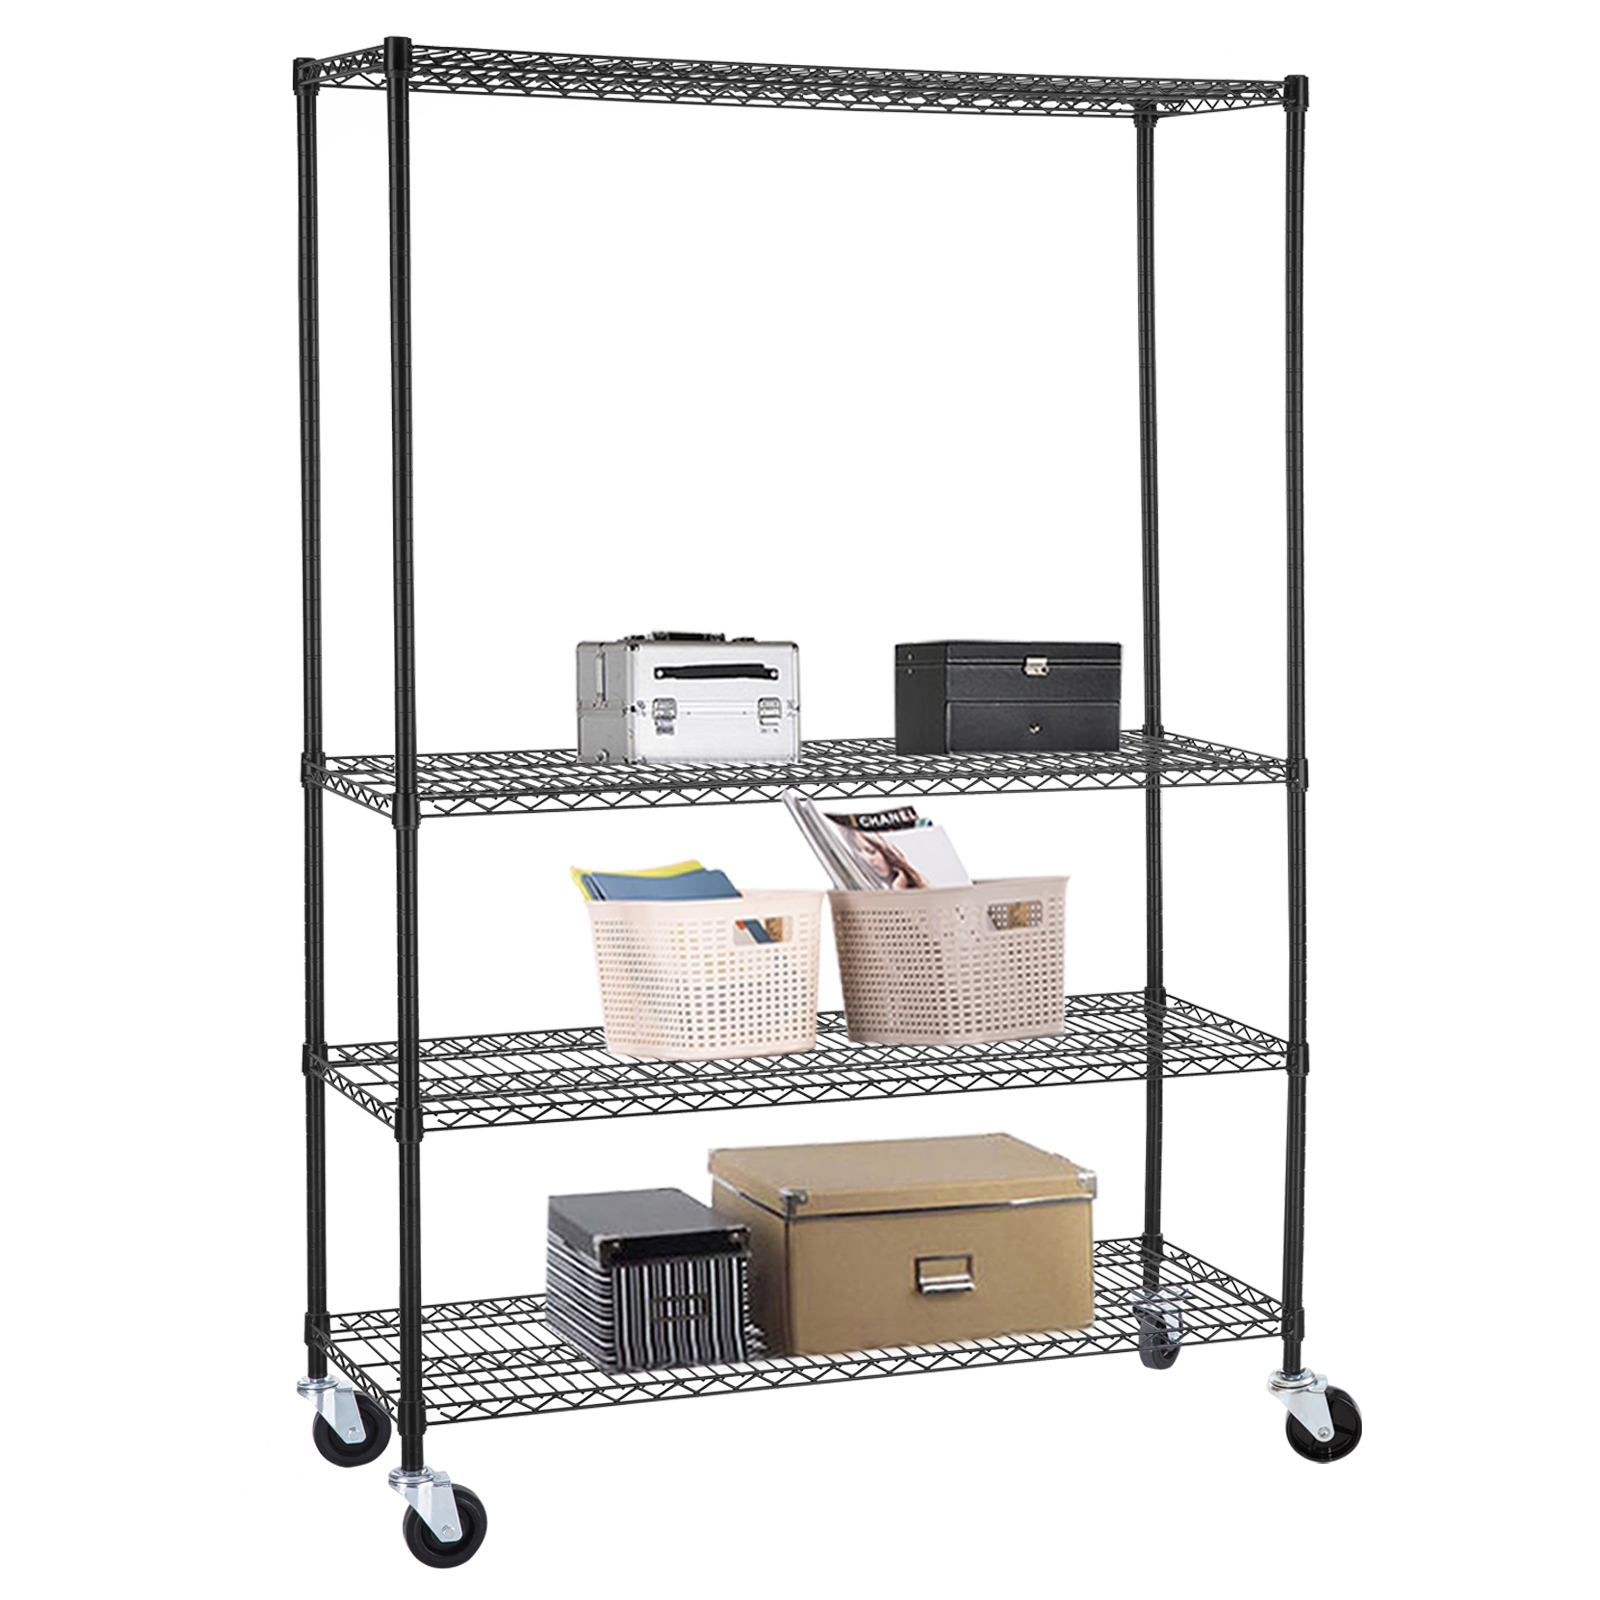 commercial metal shelving 4 tier 46 x82 x18 wire shelving rack 13753